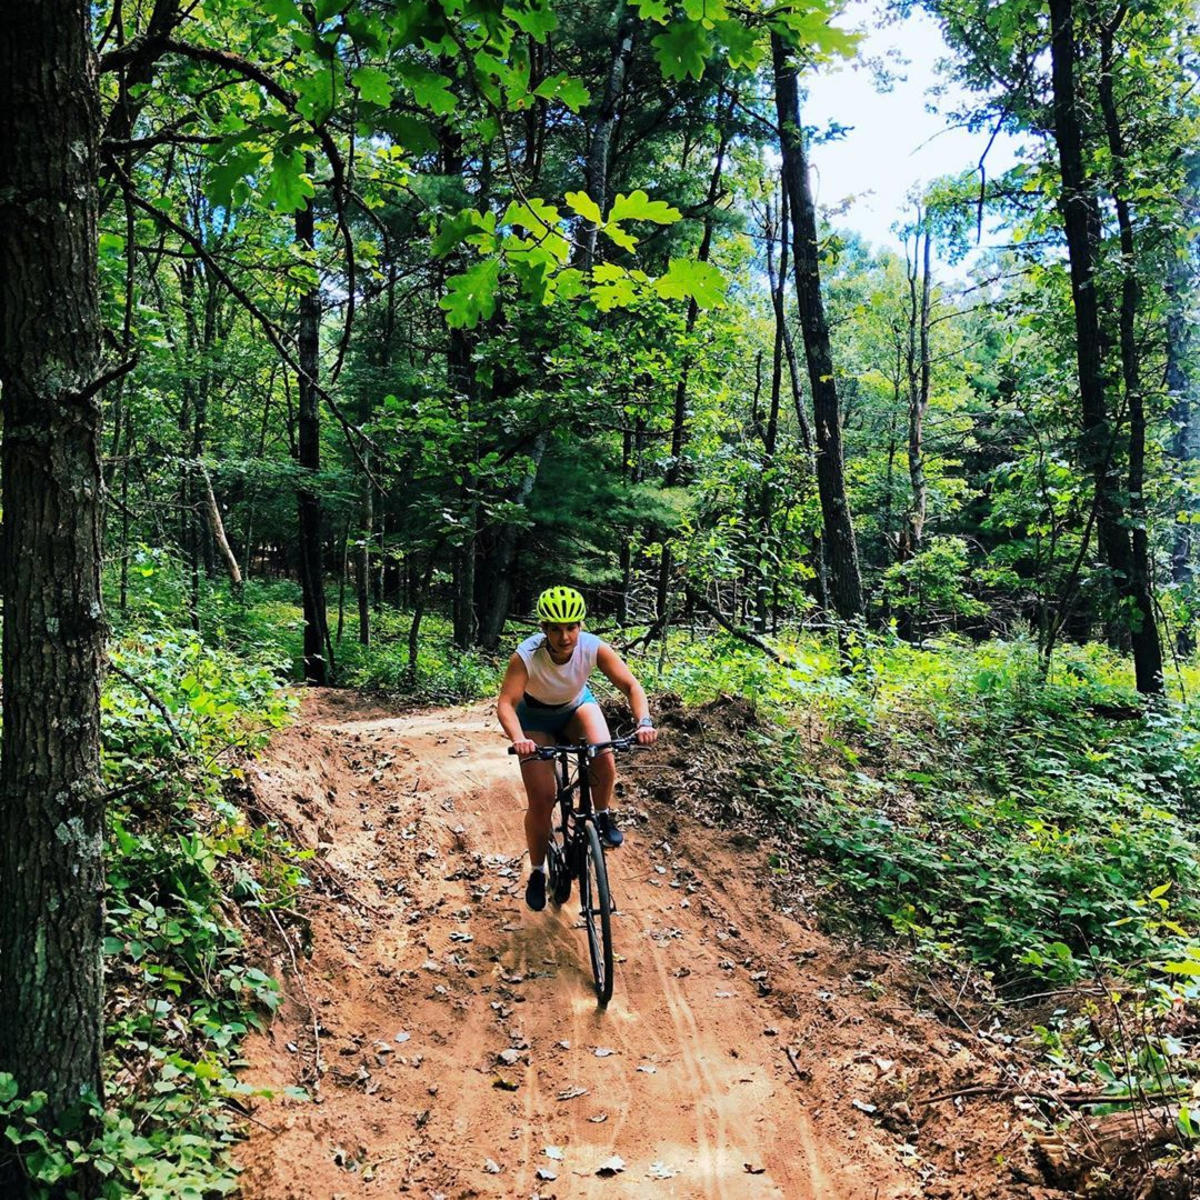 Explore the trails at Standing Rocks Park in the Stevens Point Area, one of the best spots for mountain biking in Wisconsin.